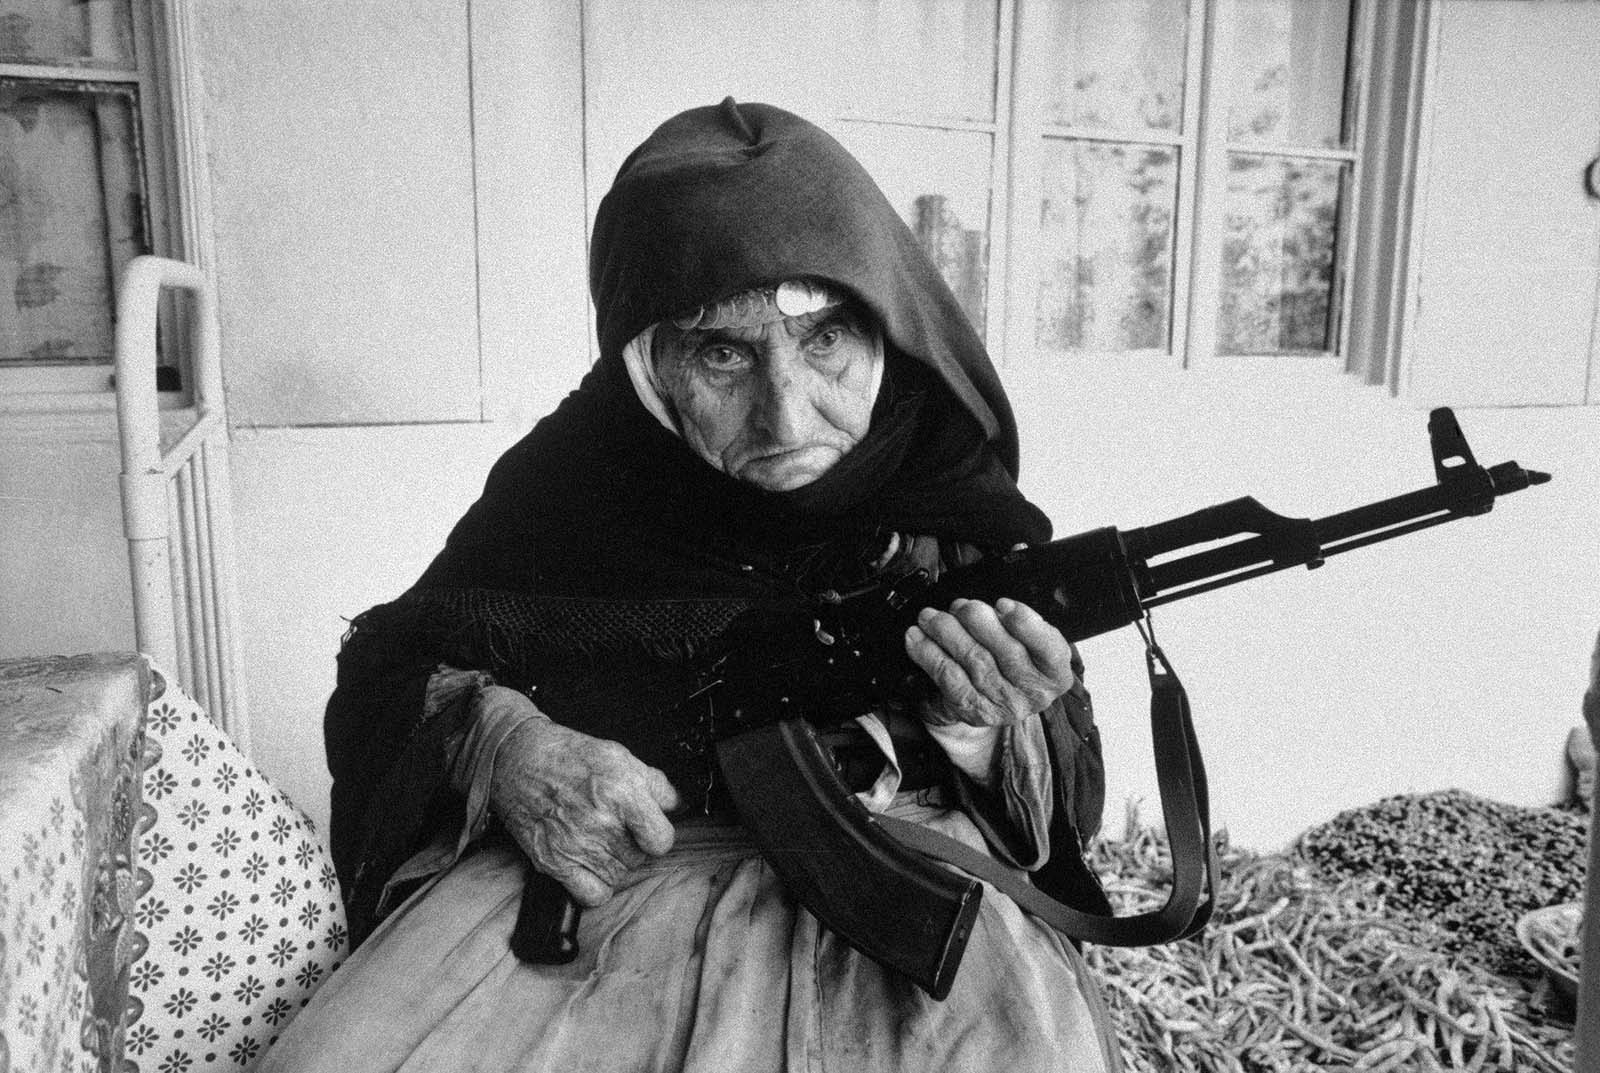 A 106-year old Armenian woman protecting her home with an AKM, 1990.